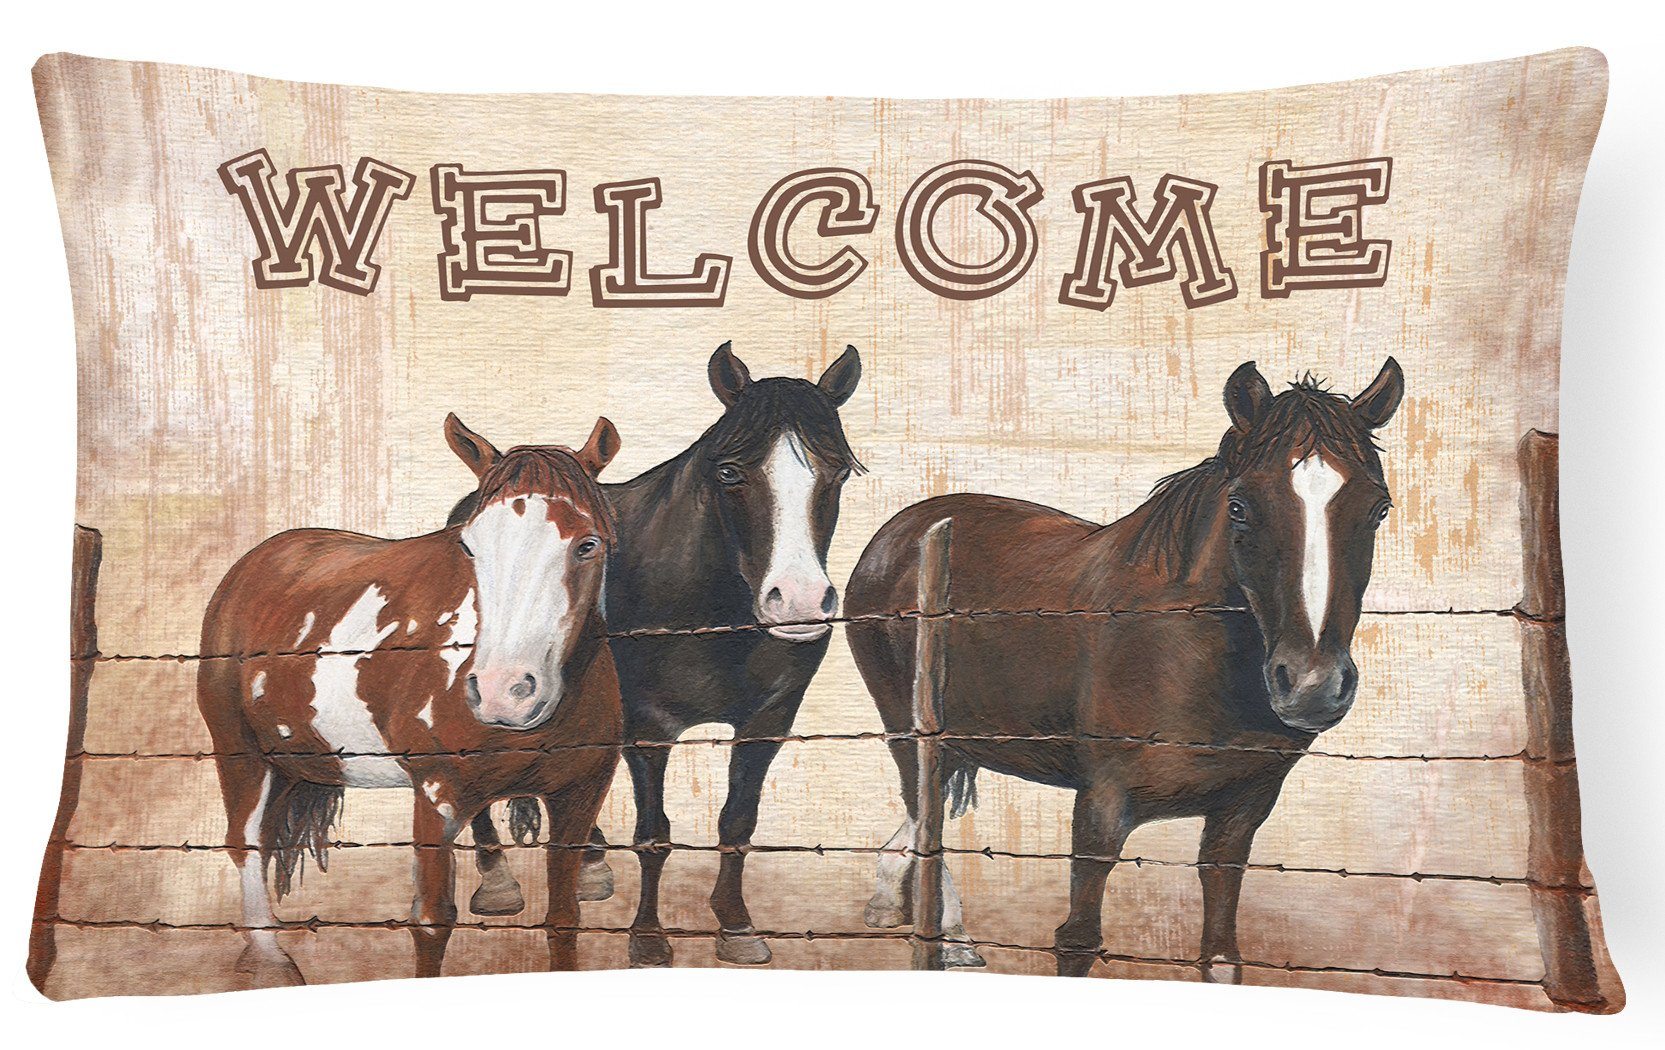 Welcome Mat with Horses   Canvas Fabric Decorative Pillow SB3059PW1216 by Caroline's Treasures